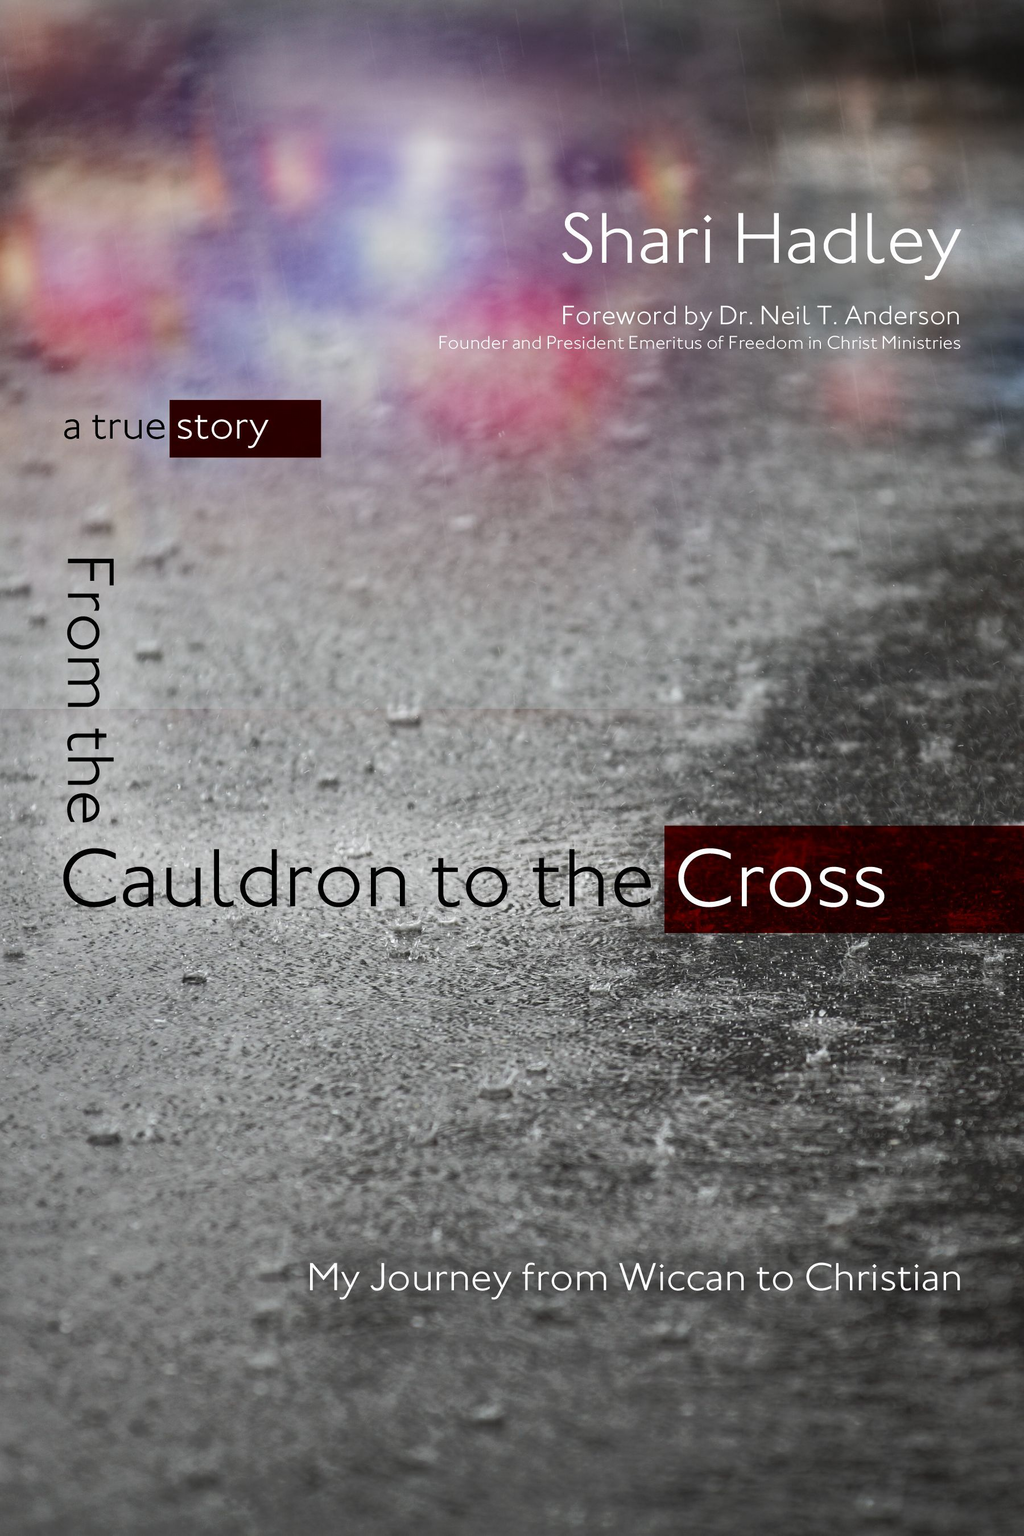 From the Cauldron to the Cross: My Journey from Wiccan to Christian